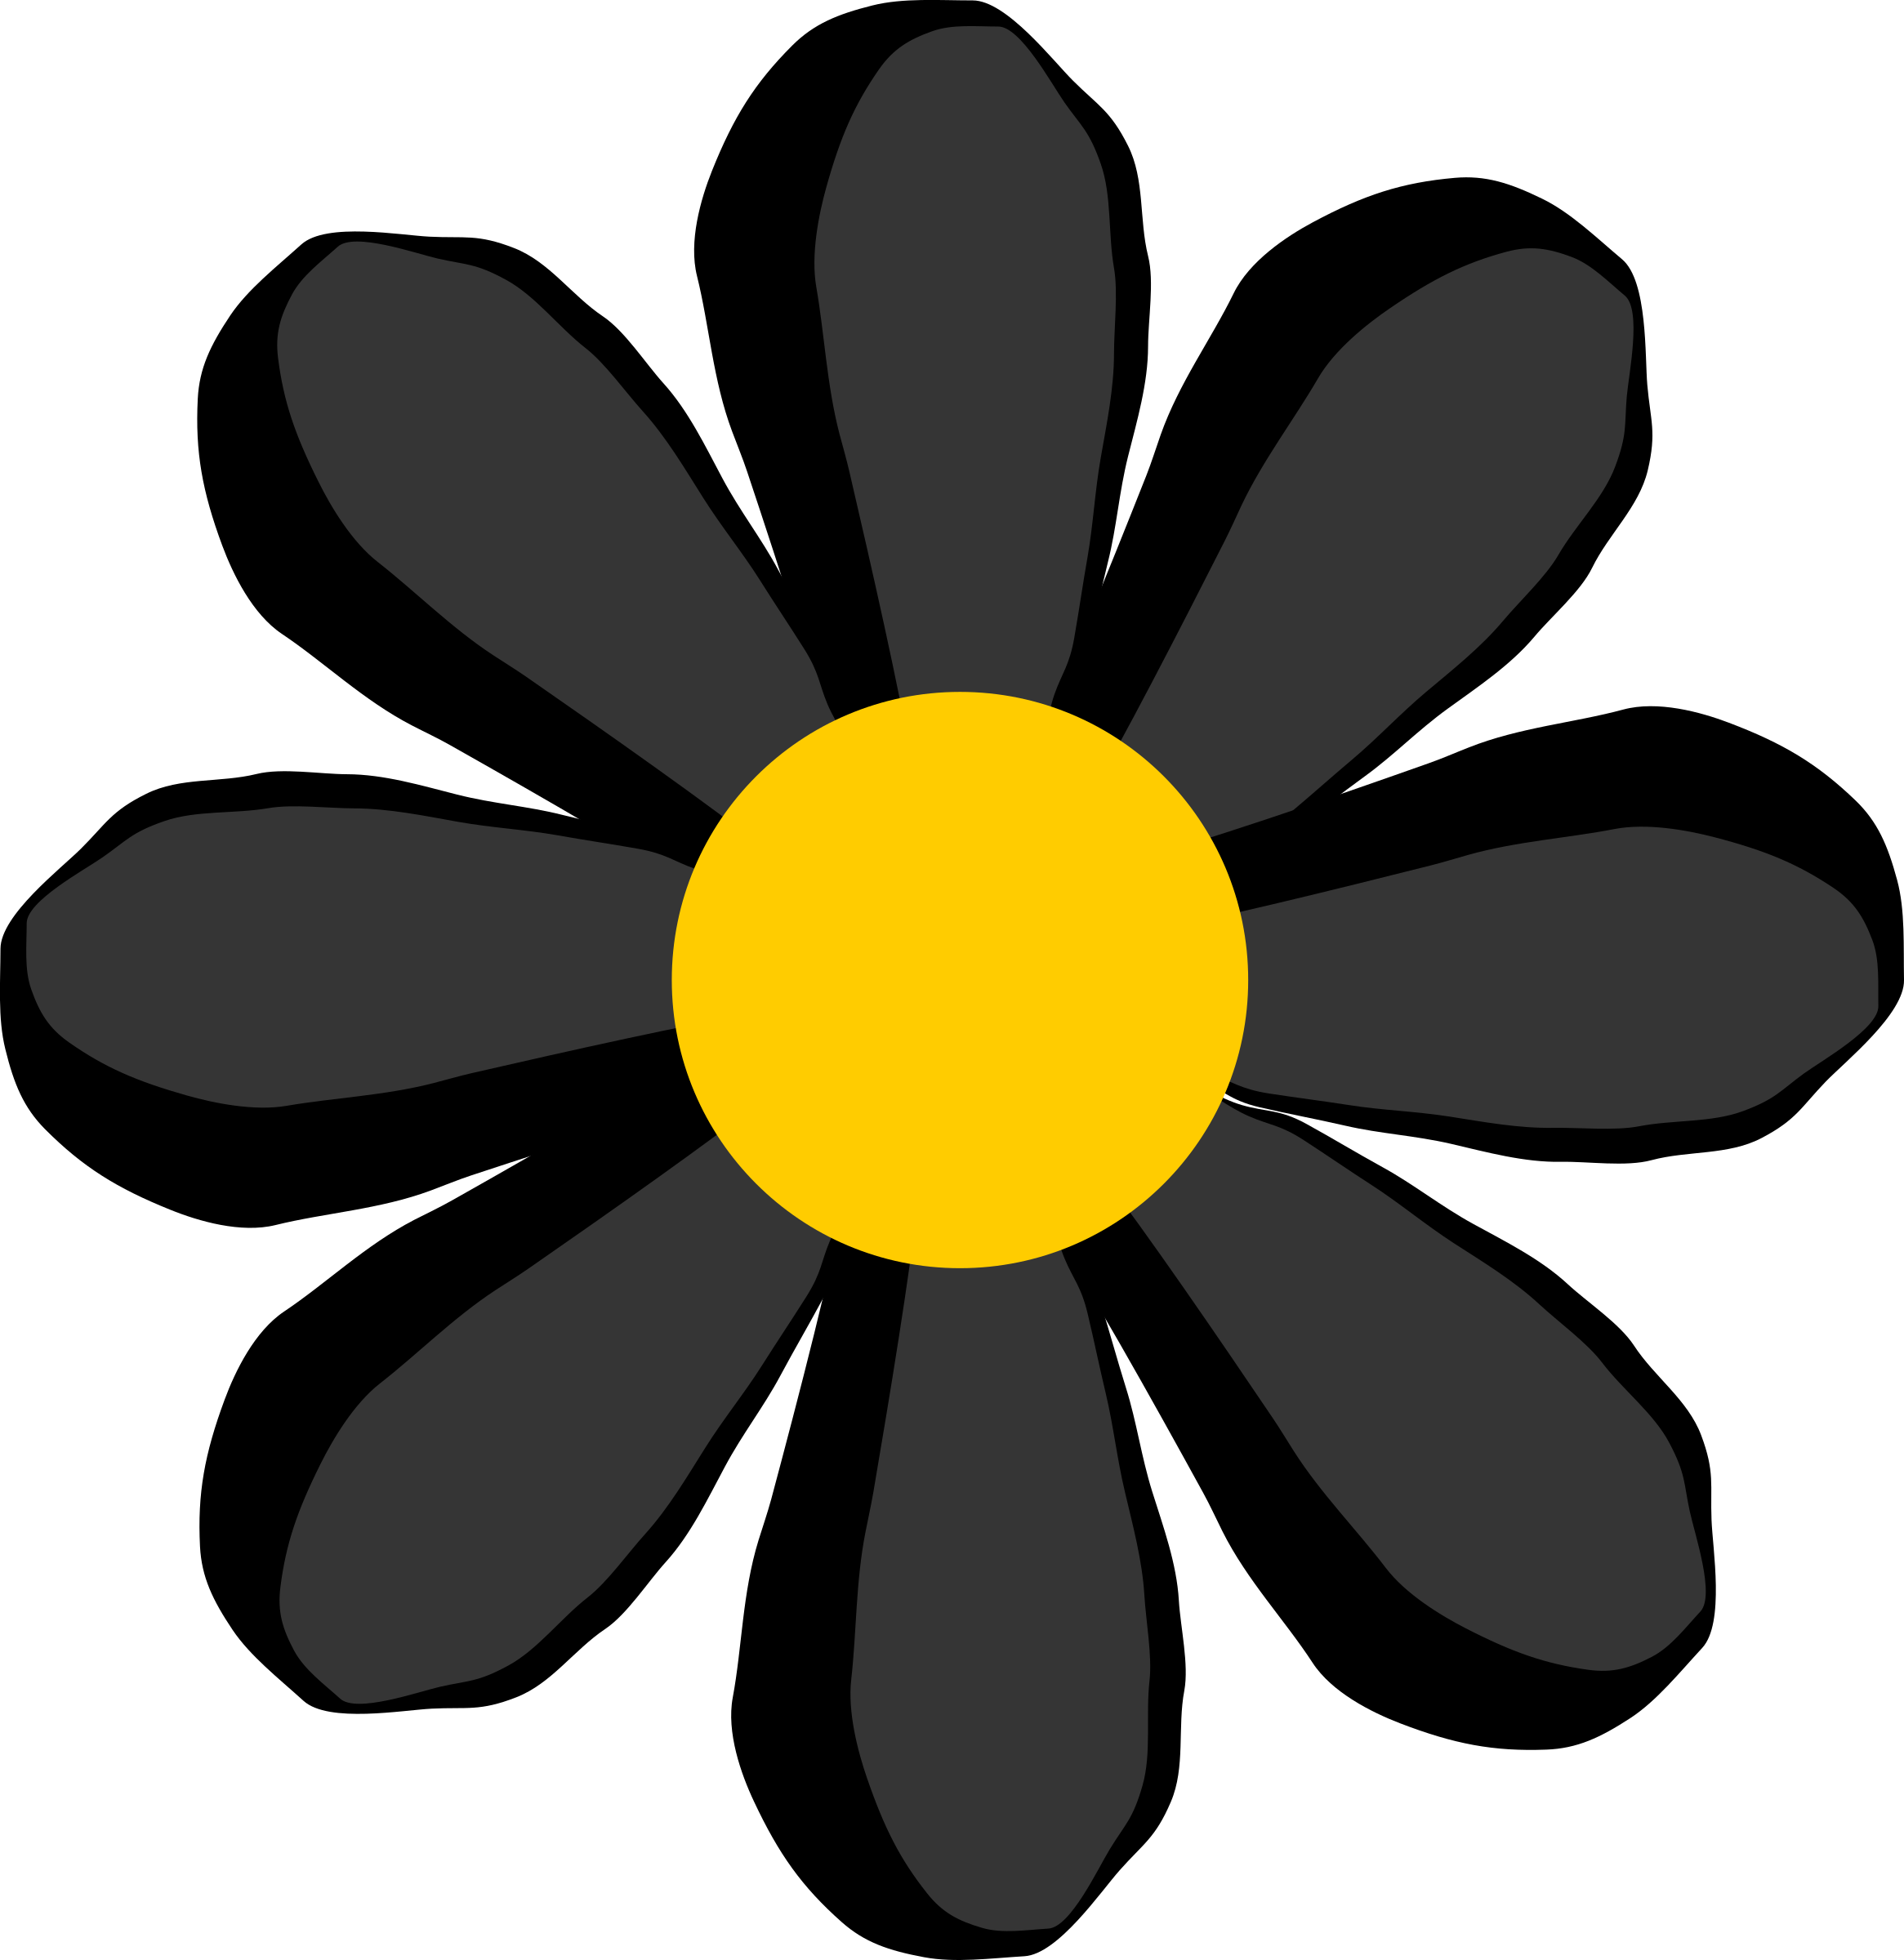 Black flower png. Icons free and downloads